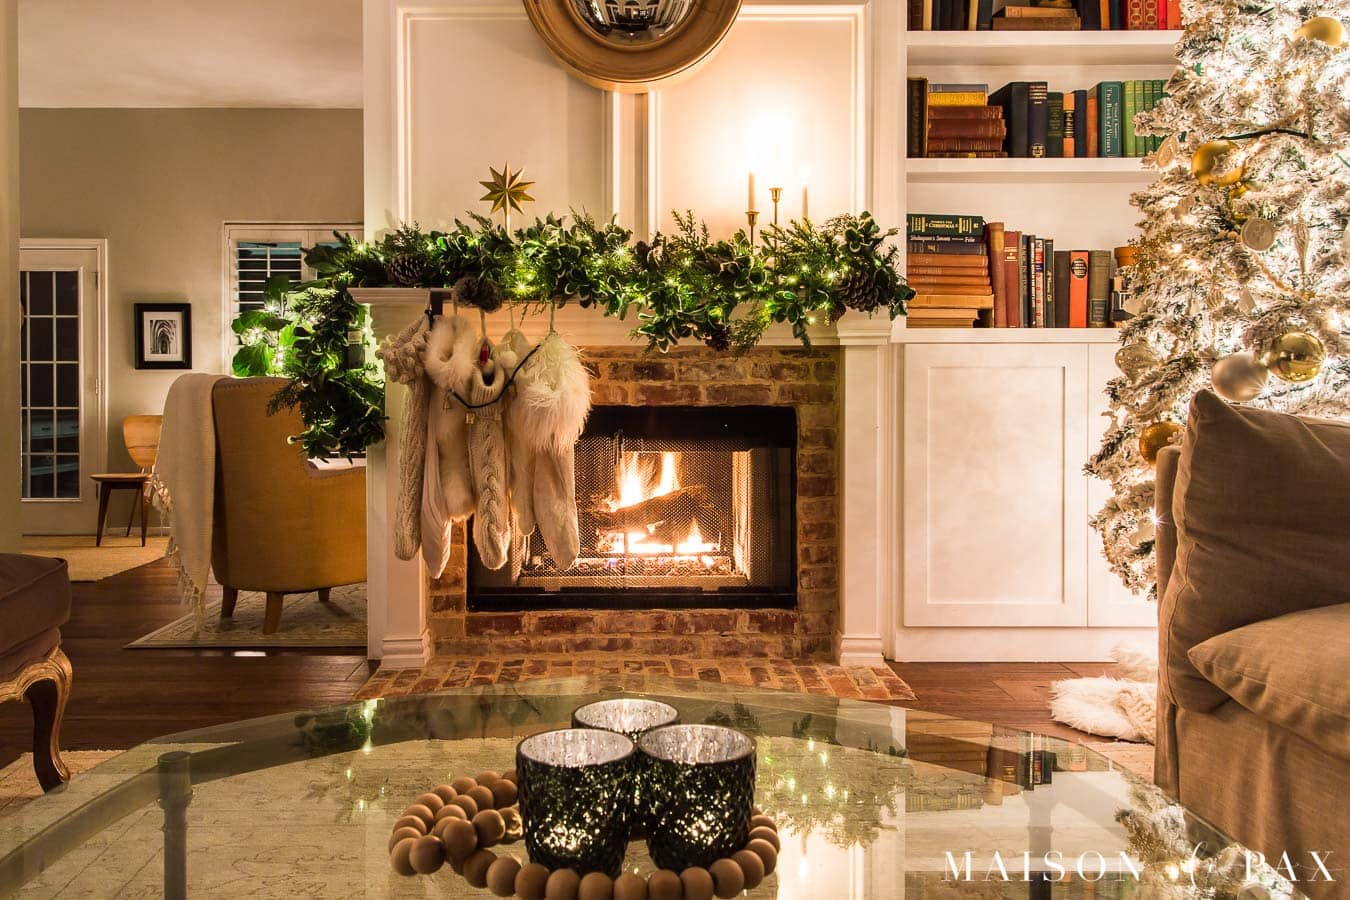 candles on the coffee table and a fire in the fireplace by the Christmas tree | Maison de Pax